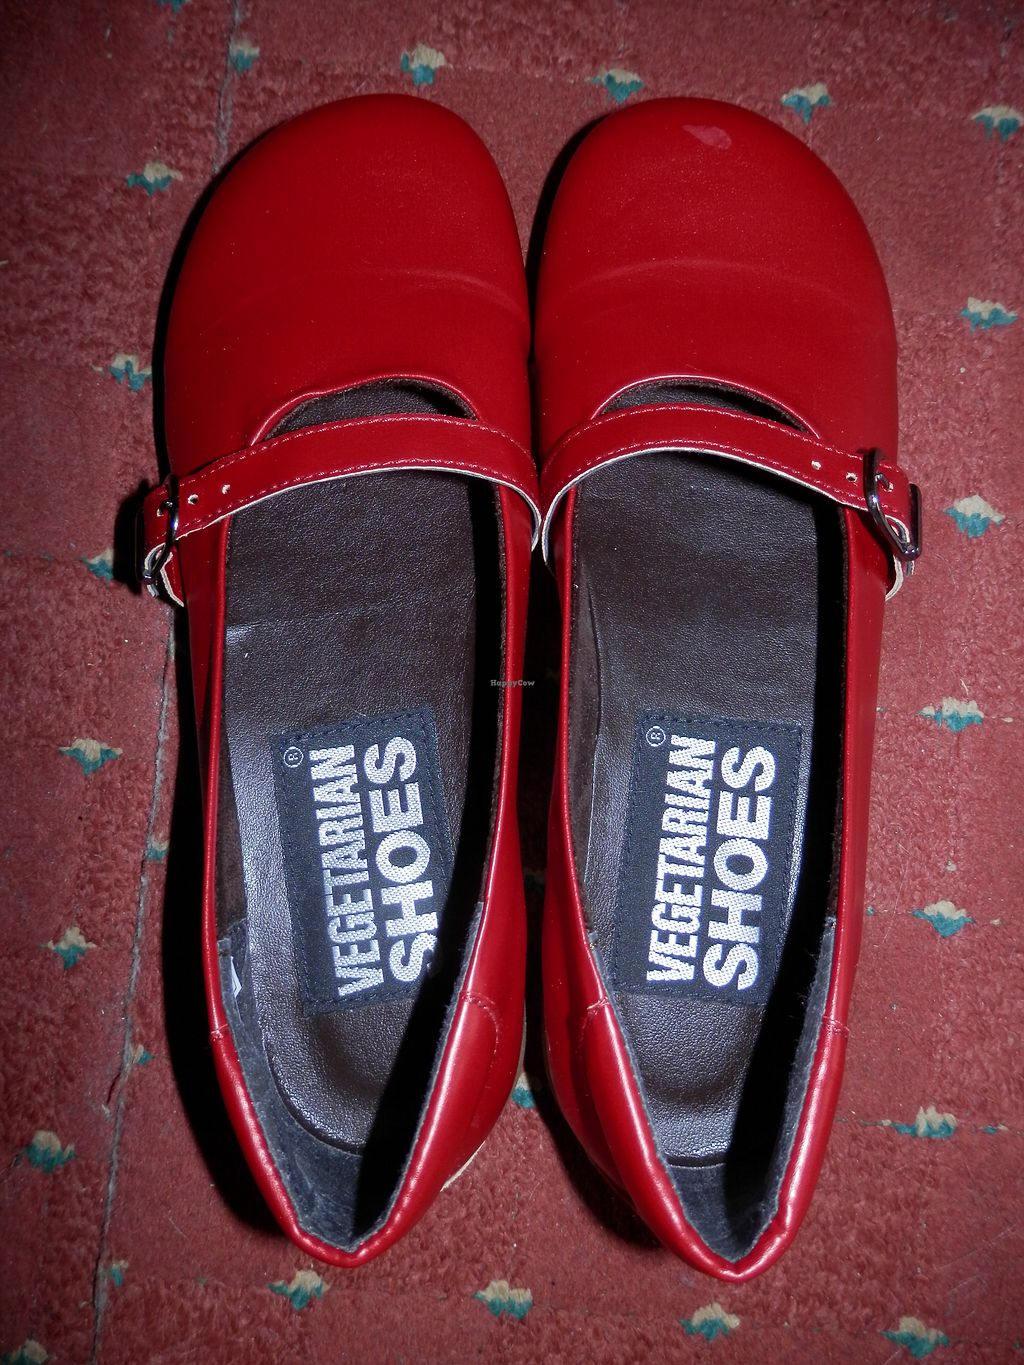 """Photo of Vegetarian Shoes  by <a href=""""/members/profile/Vegan_Belle"""">Vegan_Belle</a> <br/>Ally Sandals purchased from Vegetarian Shoes <br/> October 24, 2017  - <a href='/contact/abuse/image/30114/318346'>Report</a>"""